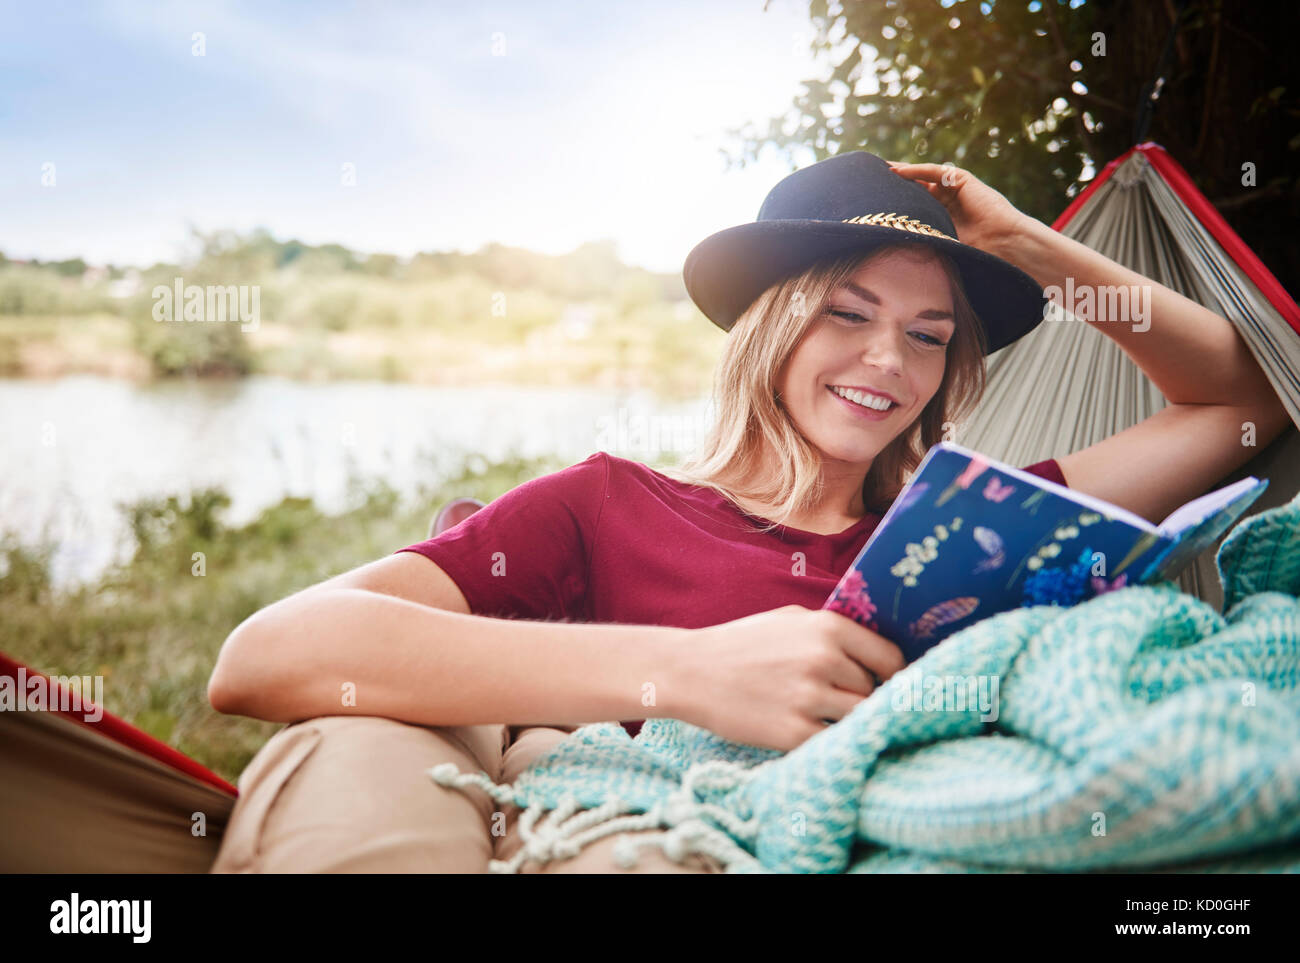 Woman relaxing in hammock reading book, Krakow, Malopolskie, Poland, Europe - Stock Image